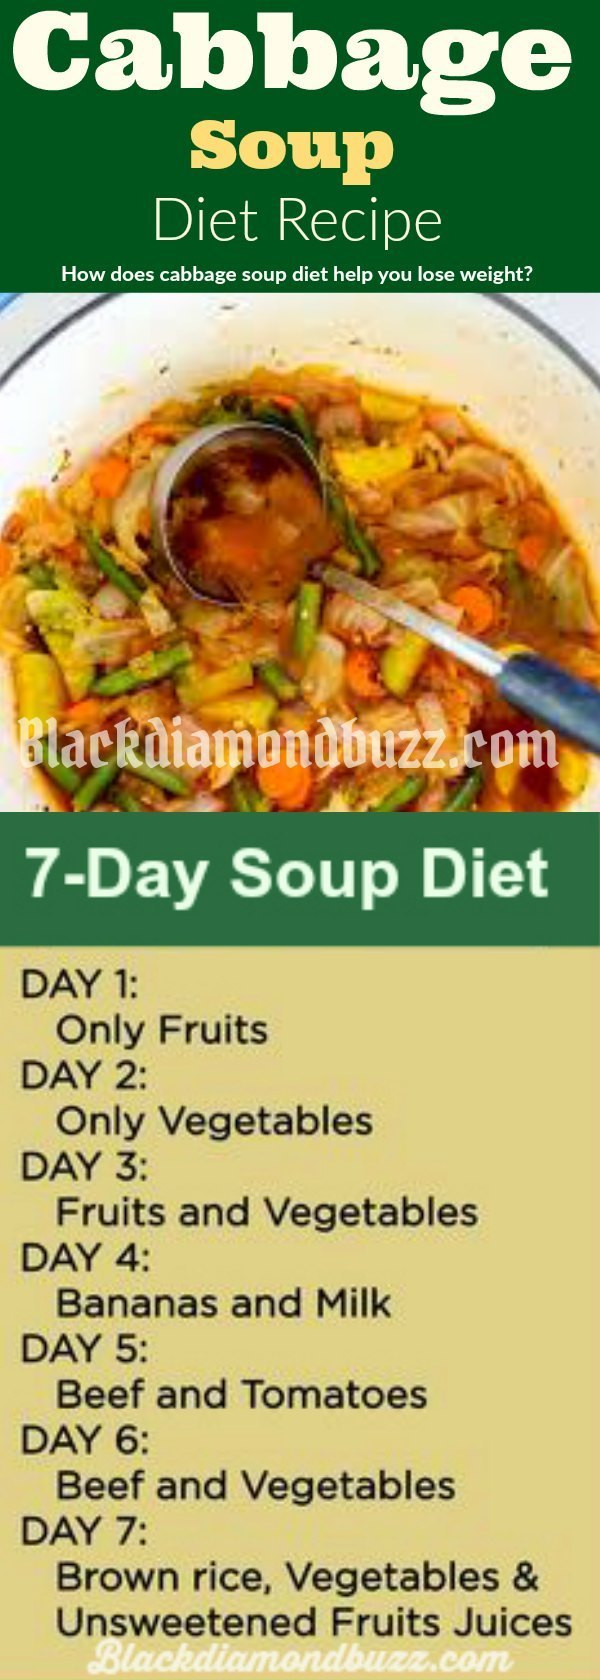 Cabbage Soup Recipe Diet  Best Cabbage Soup Diet Recipe for Weight Loss Lose 10